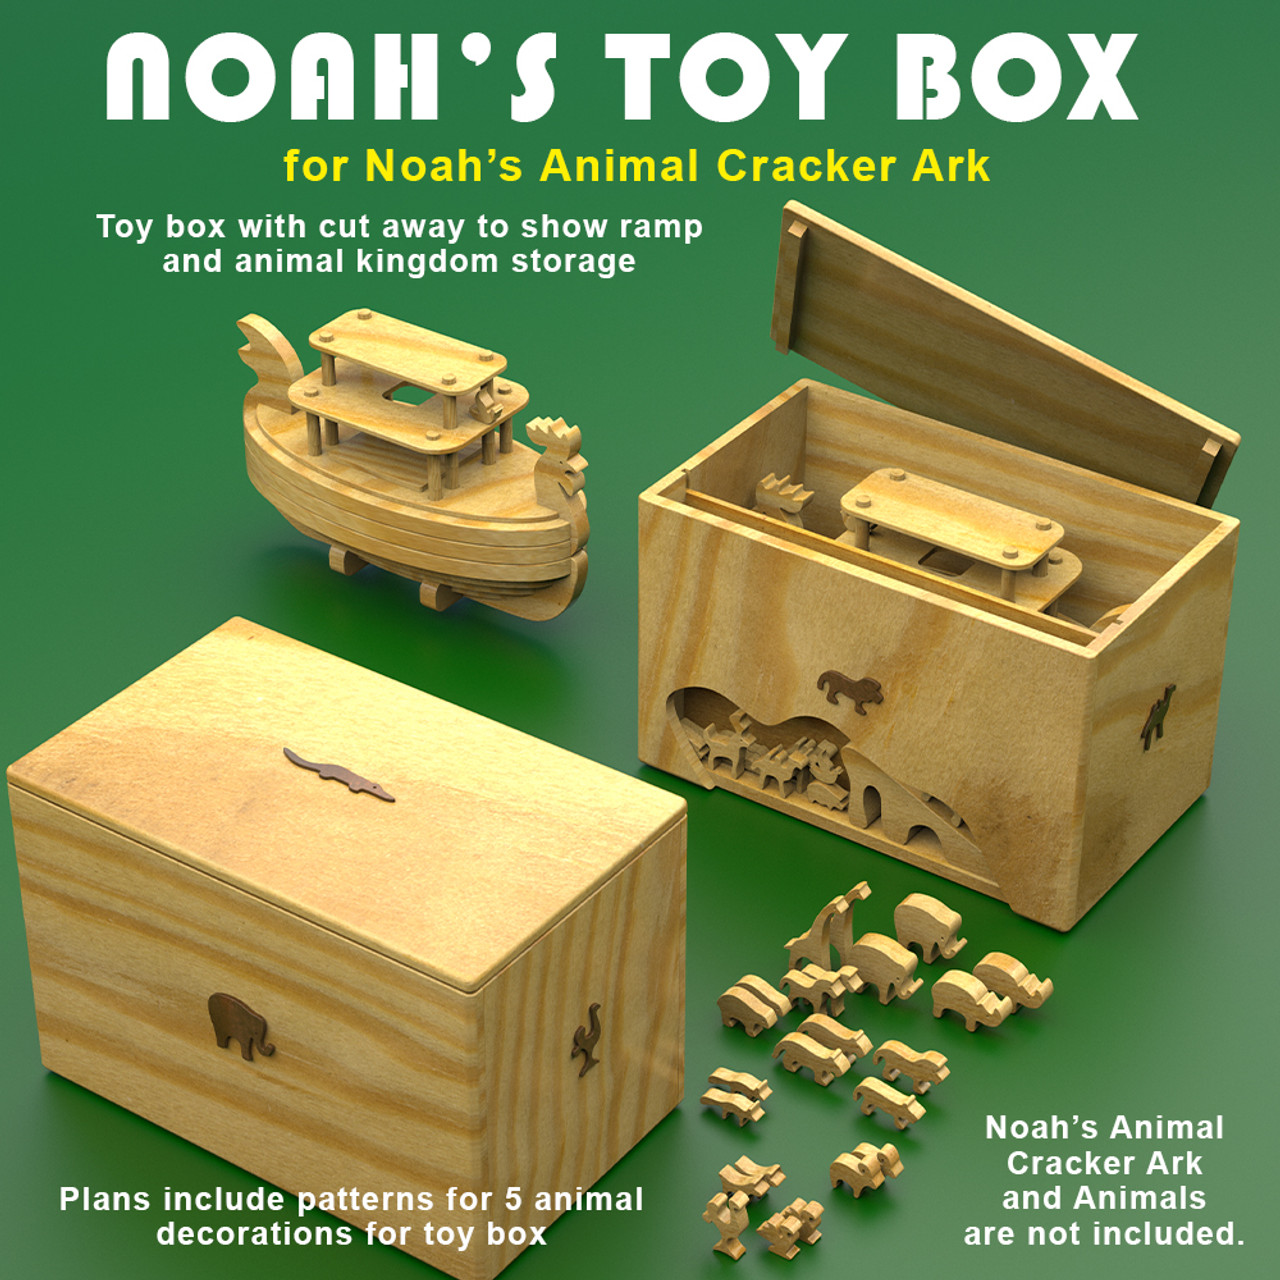 toy box for noah's animal cracker ark wood toy plans (pdf download)